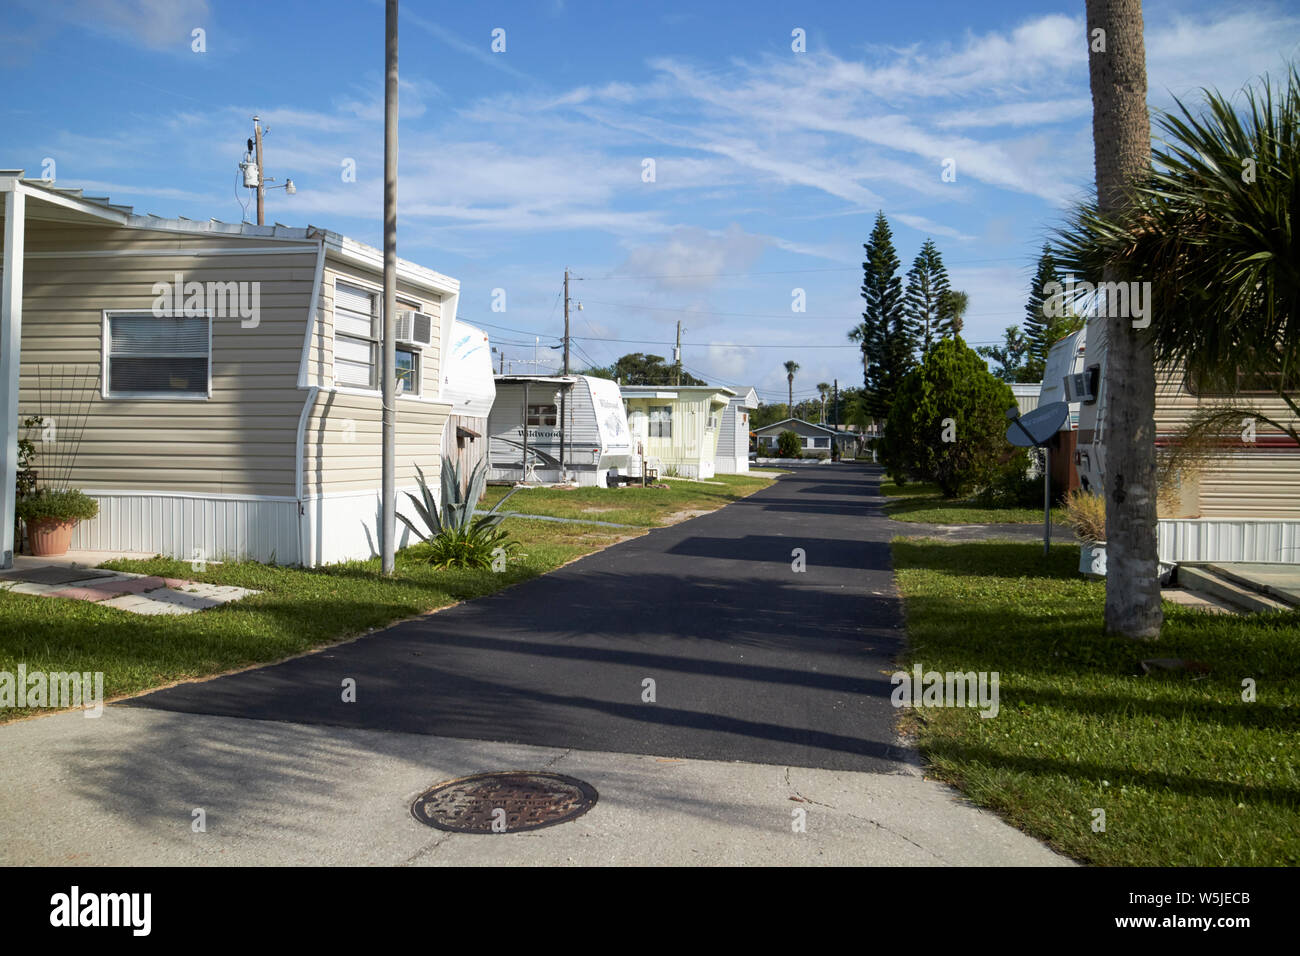 trailer park rv park homes in florida usa united states of america Stock Photo